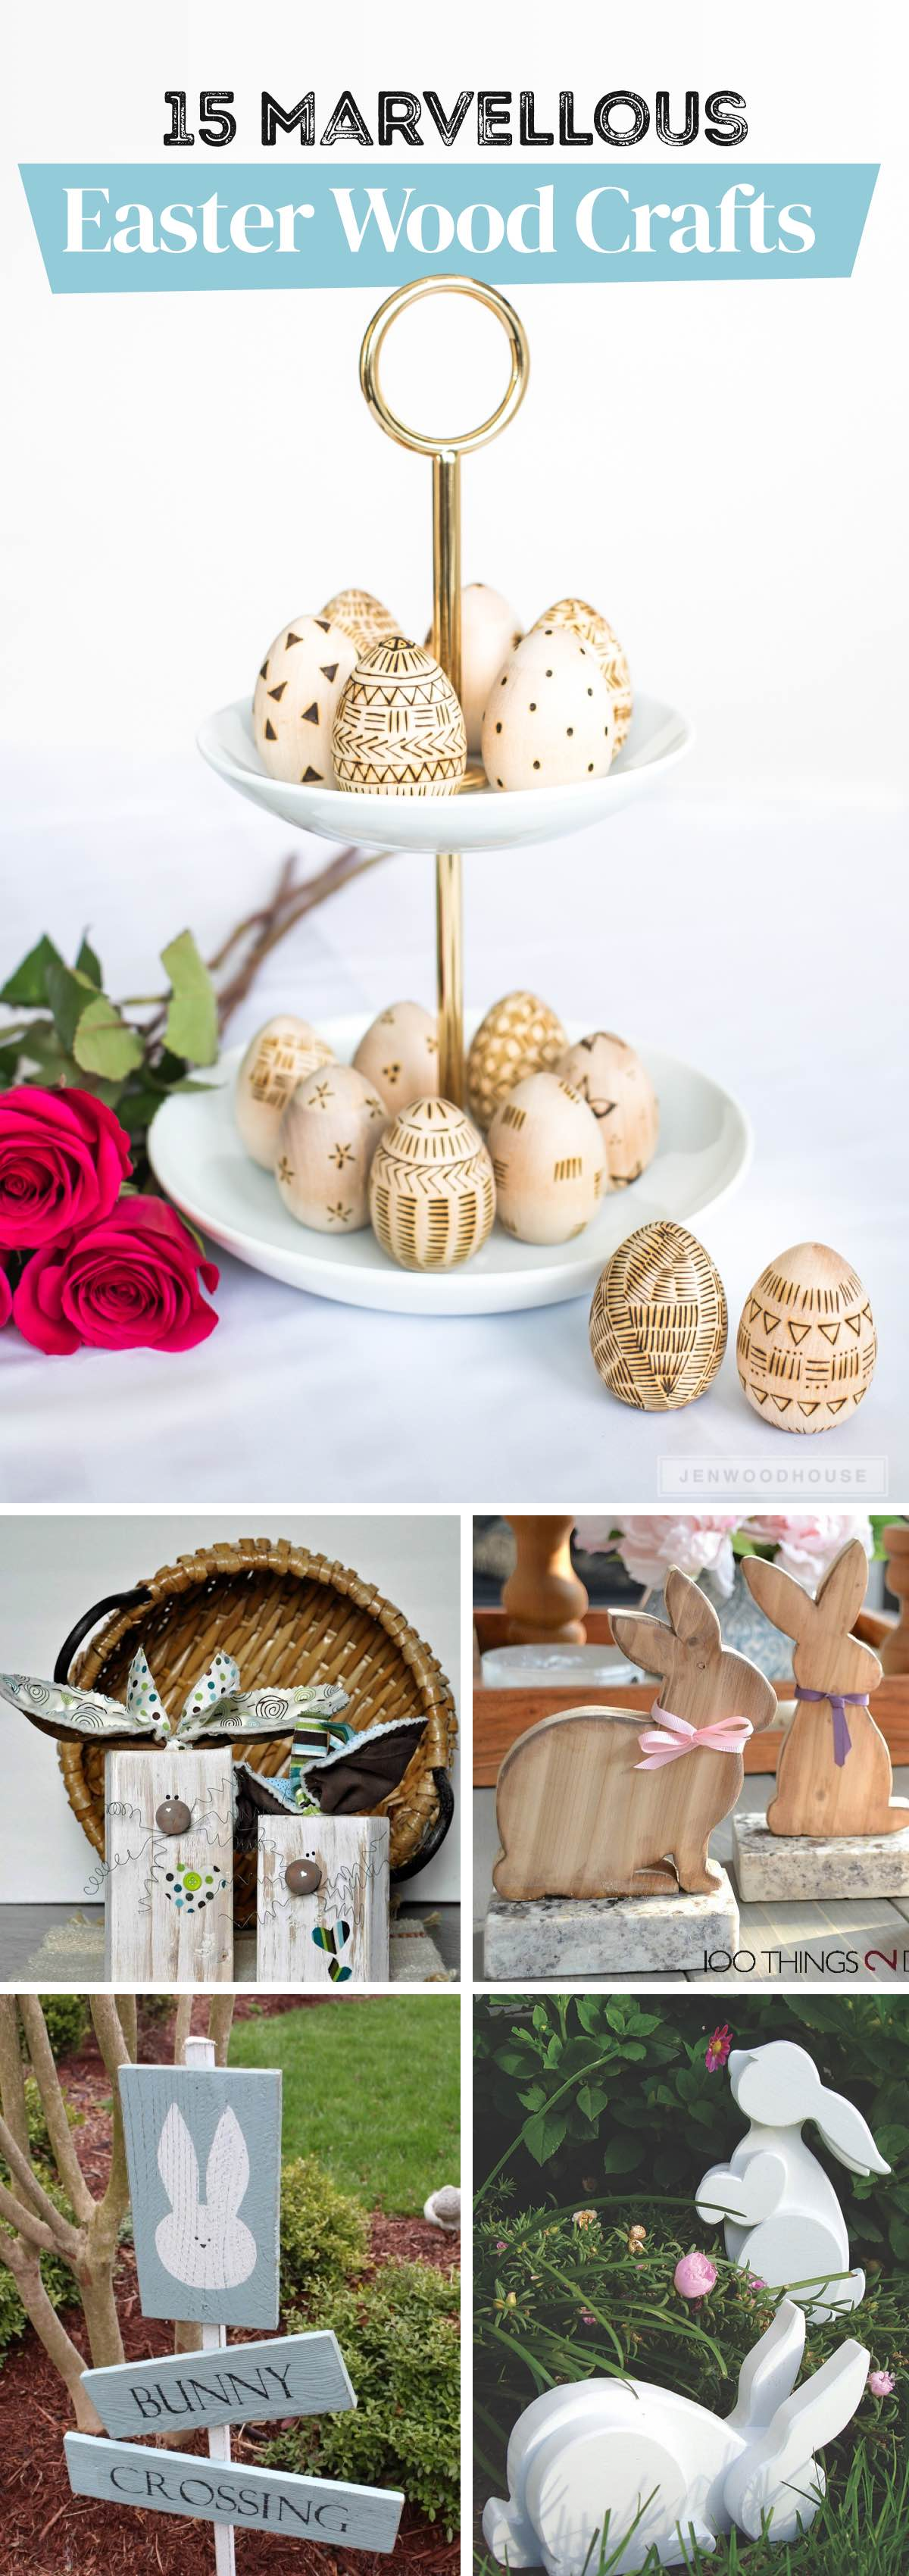 15 Marvellous Easter Wood Crafts to Adorn the Space with Bright Hues!